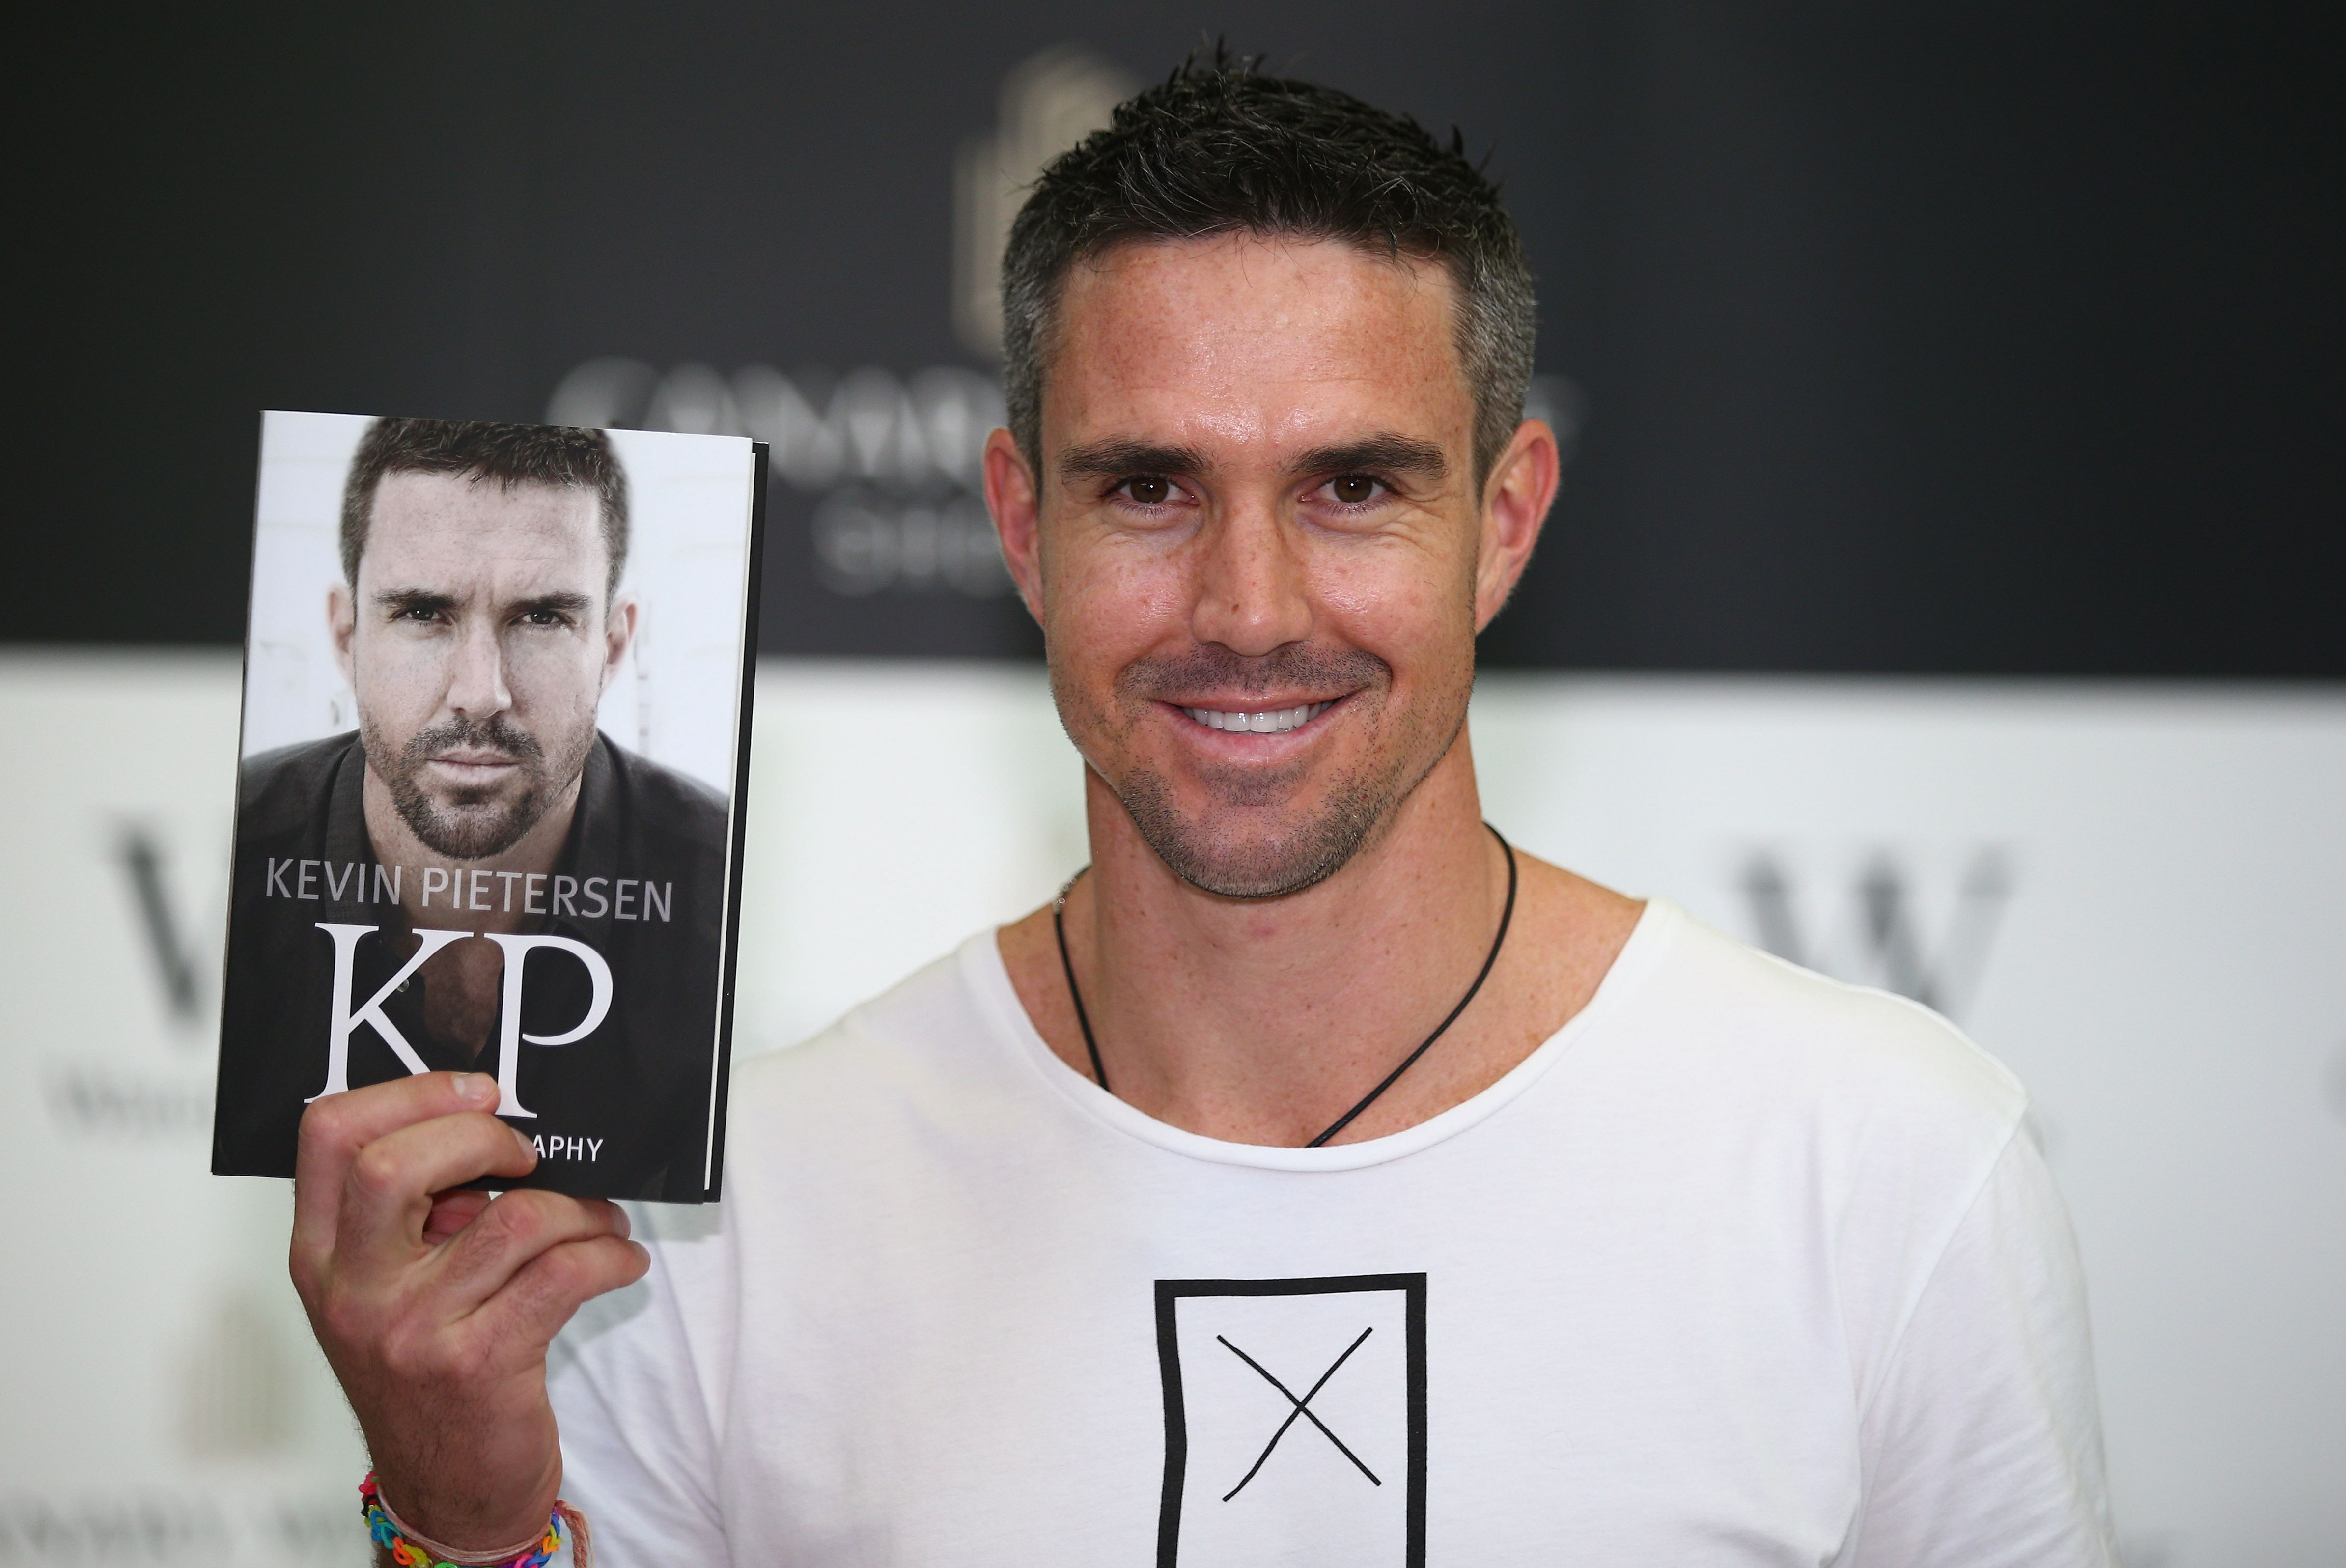 I would love to play for England again: Kevin Pietersen buoyed by 'encouraging' comments from next ECB boss